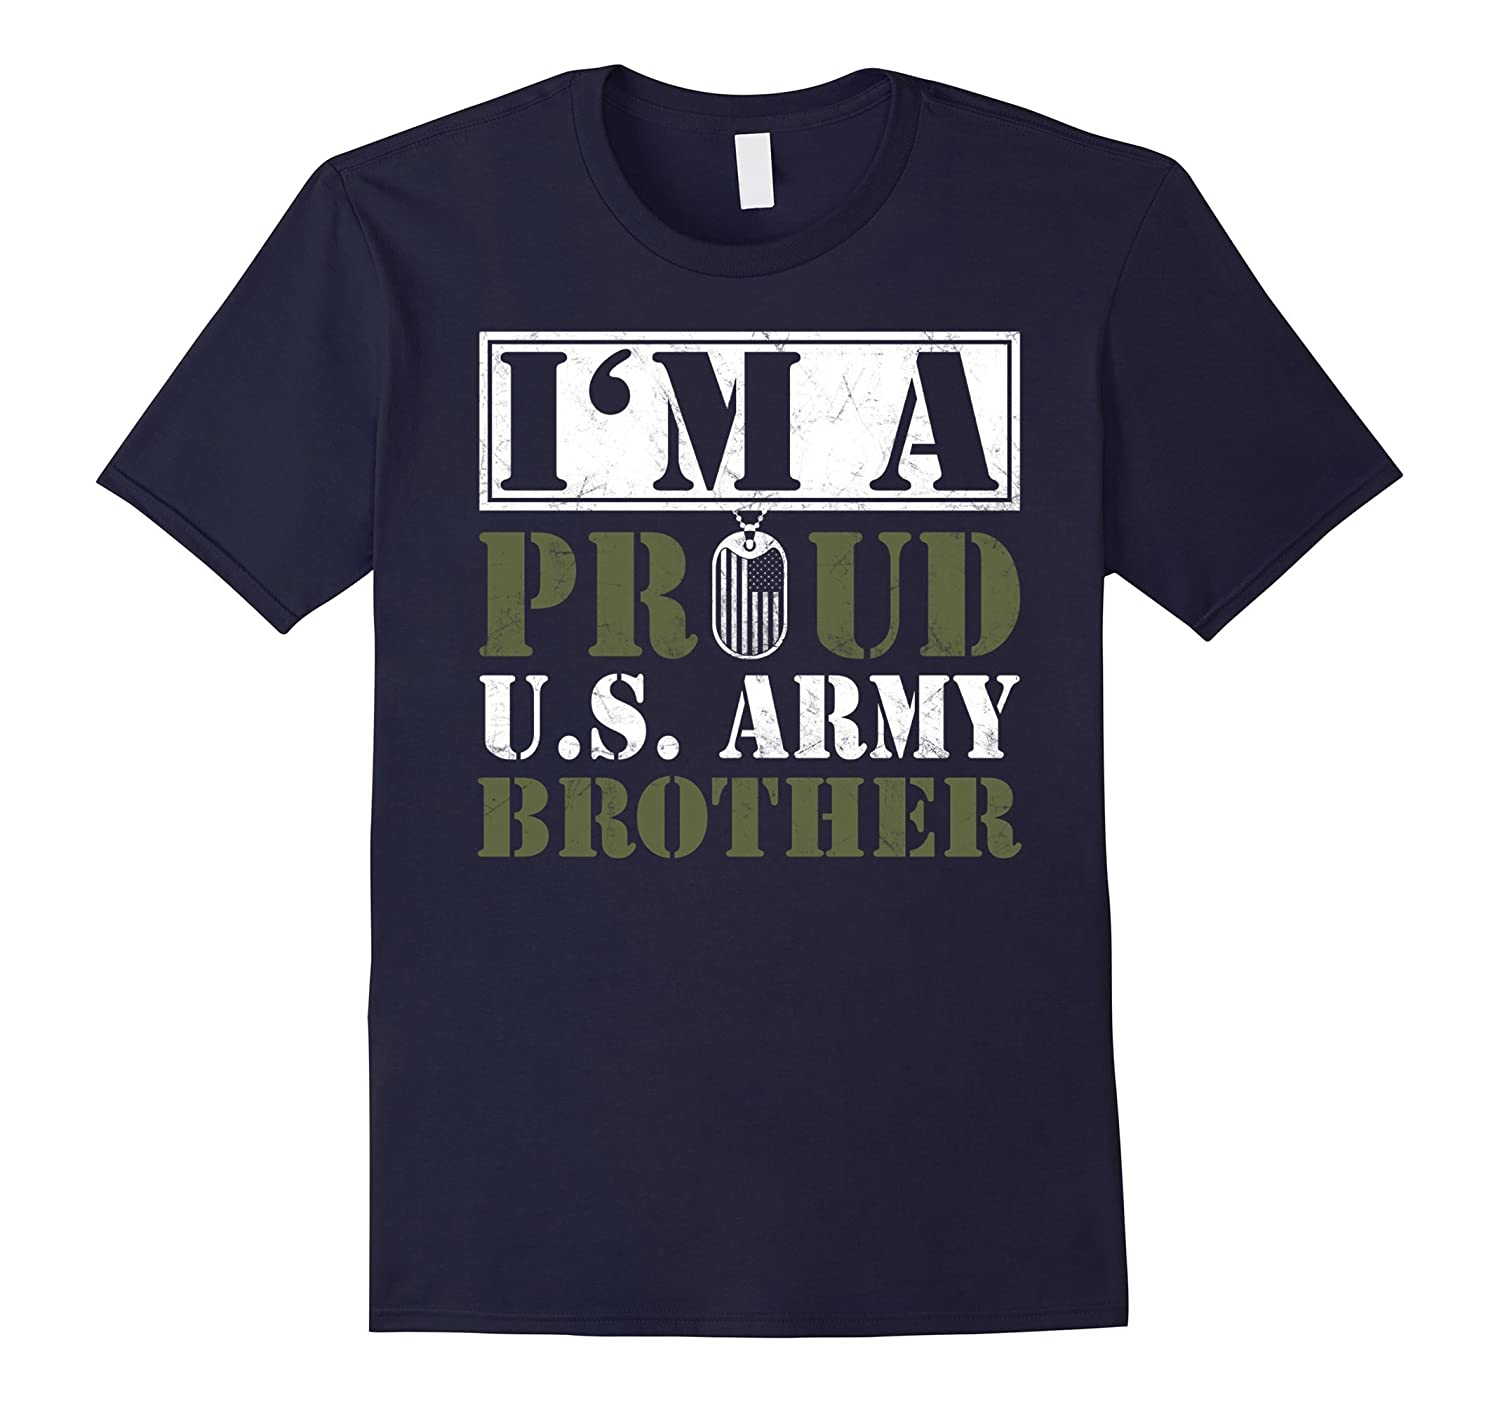 Army Brother Shirt - I'am A Proud U.S. Army Brother-Art